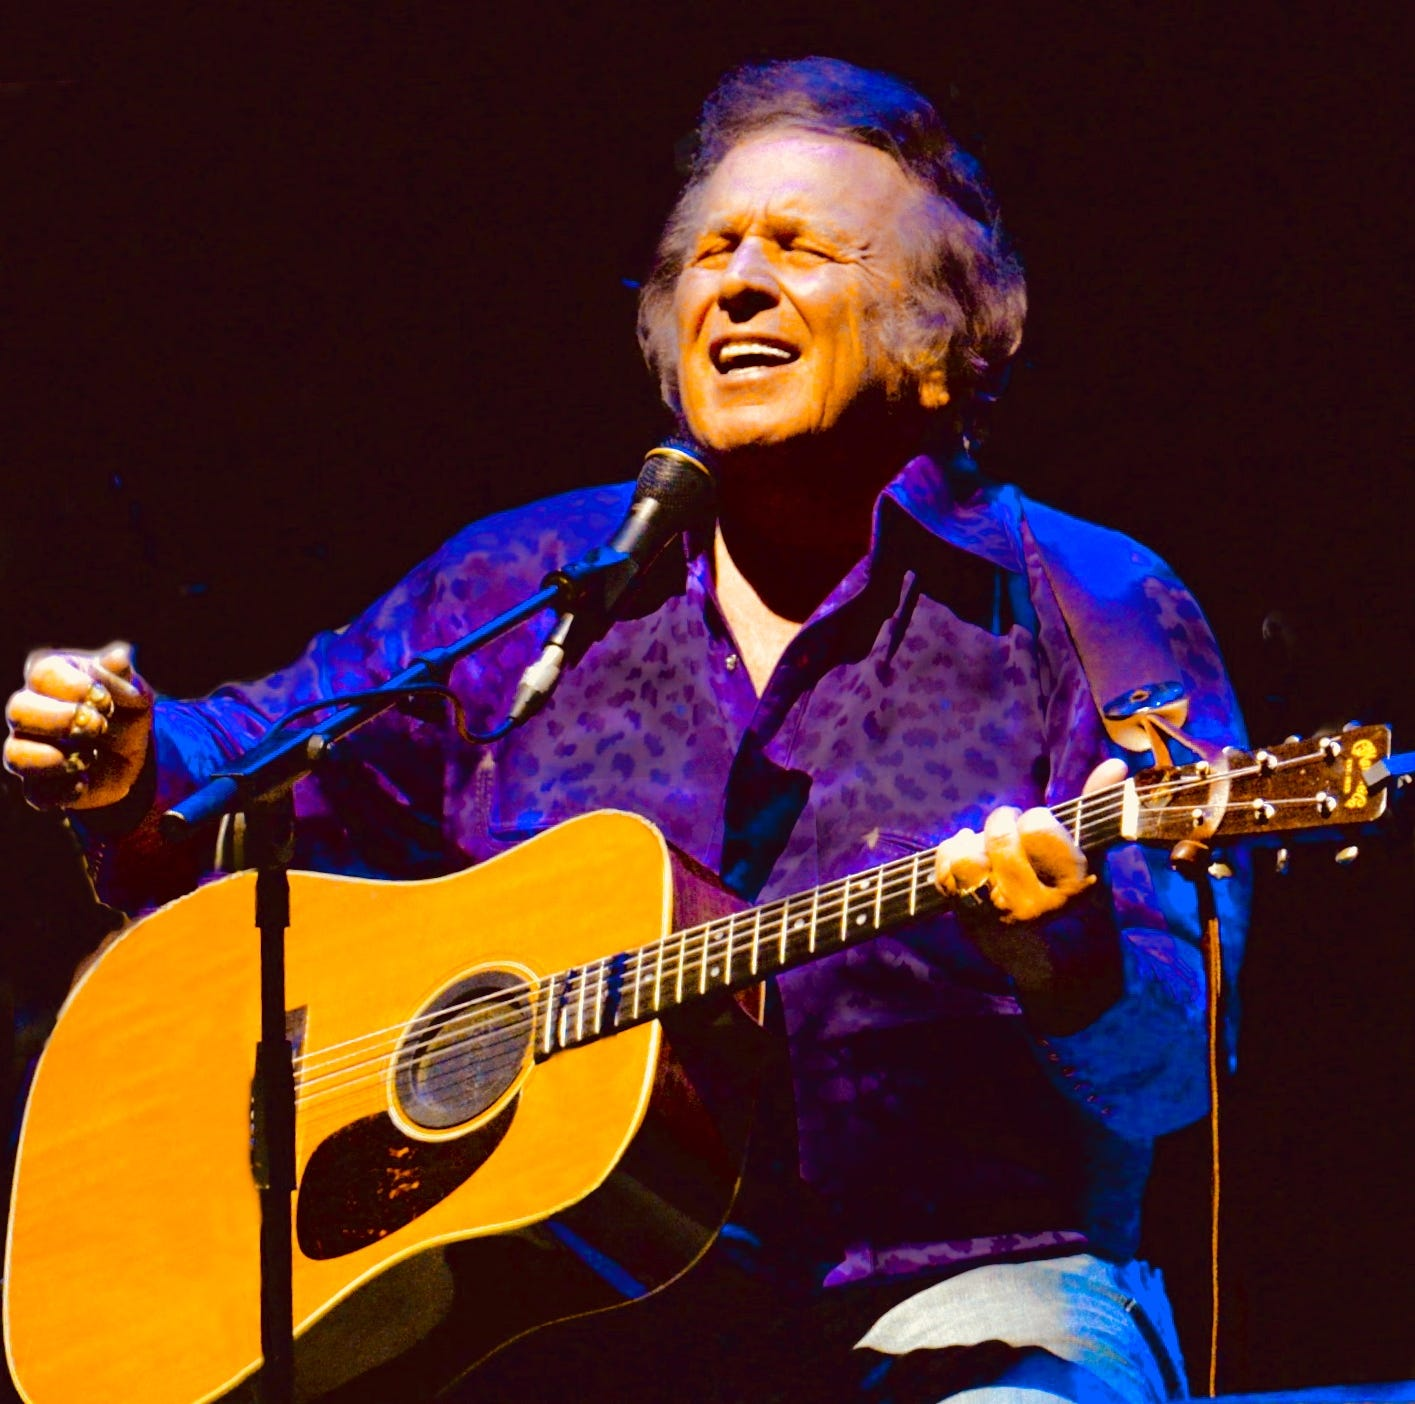 'American Pie' singer Don McLean & Pure Prairie League to perform at the Anderson Center